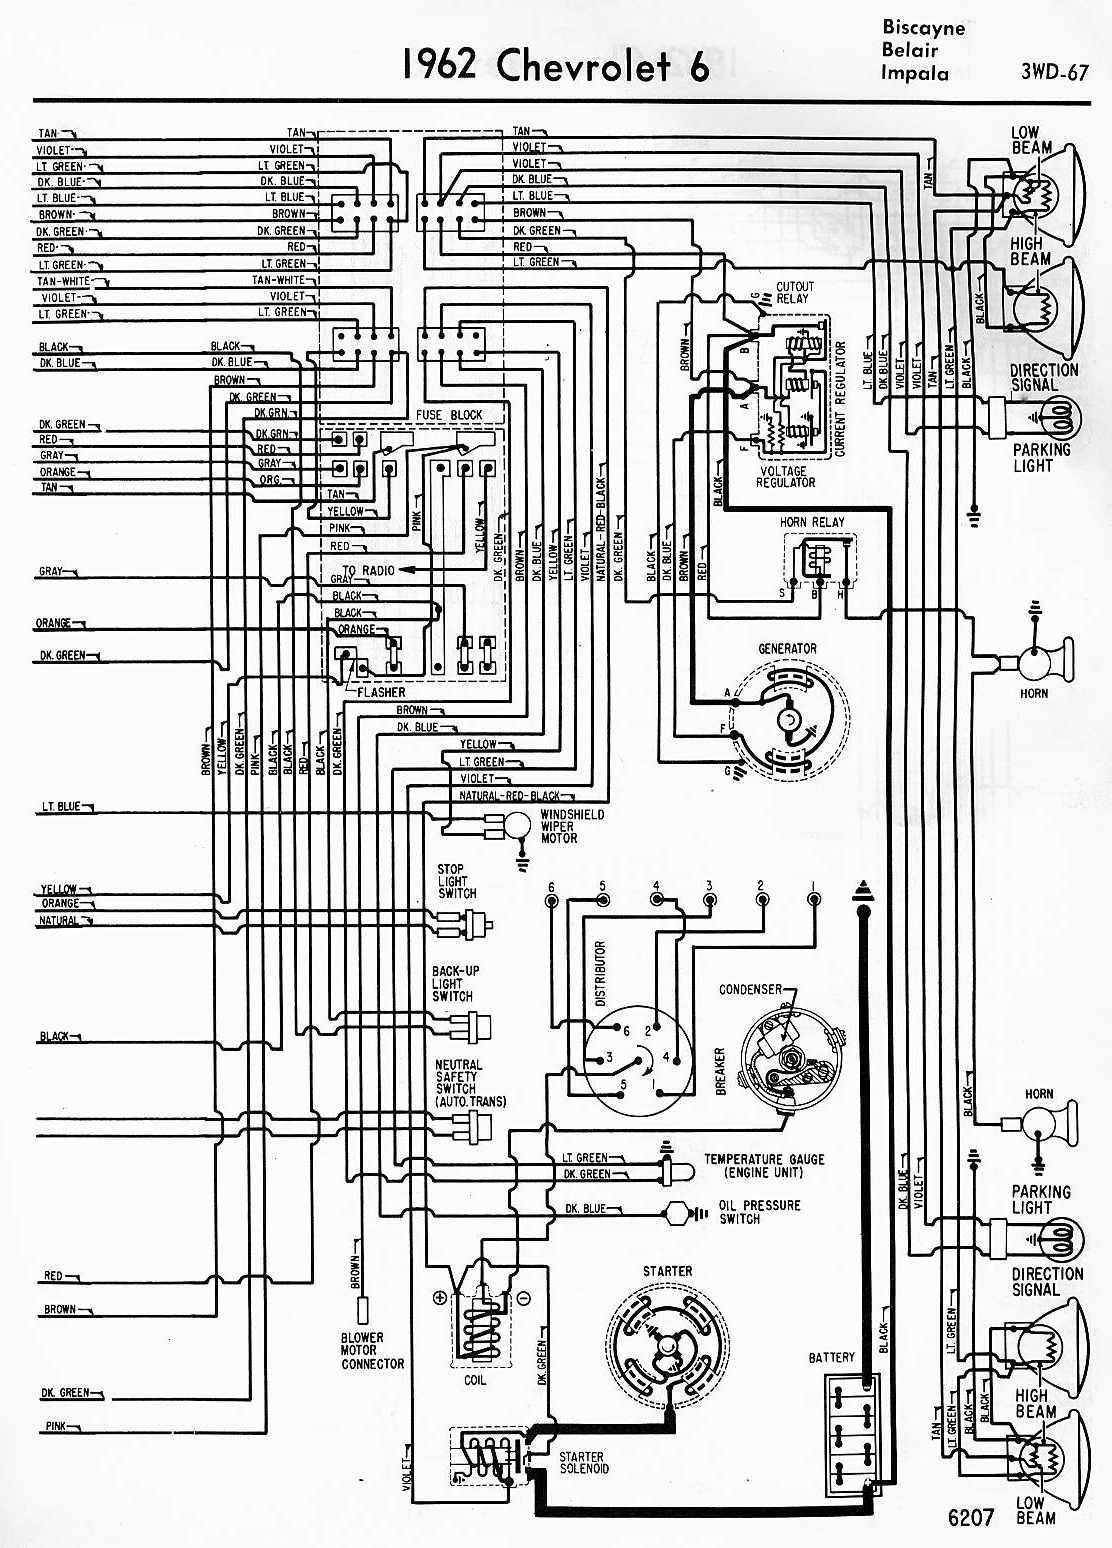 small resolution of ez wiring diagram 1966 gto 20 artatec automobile de u2022ez wiring diagram 1966 gto best